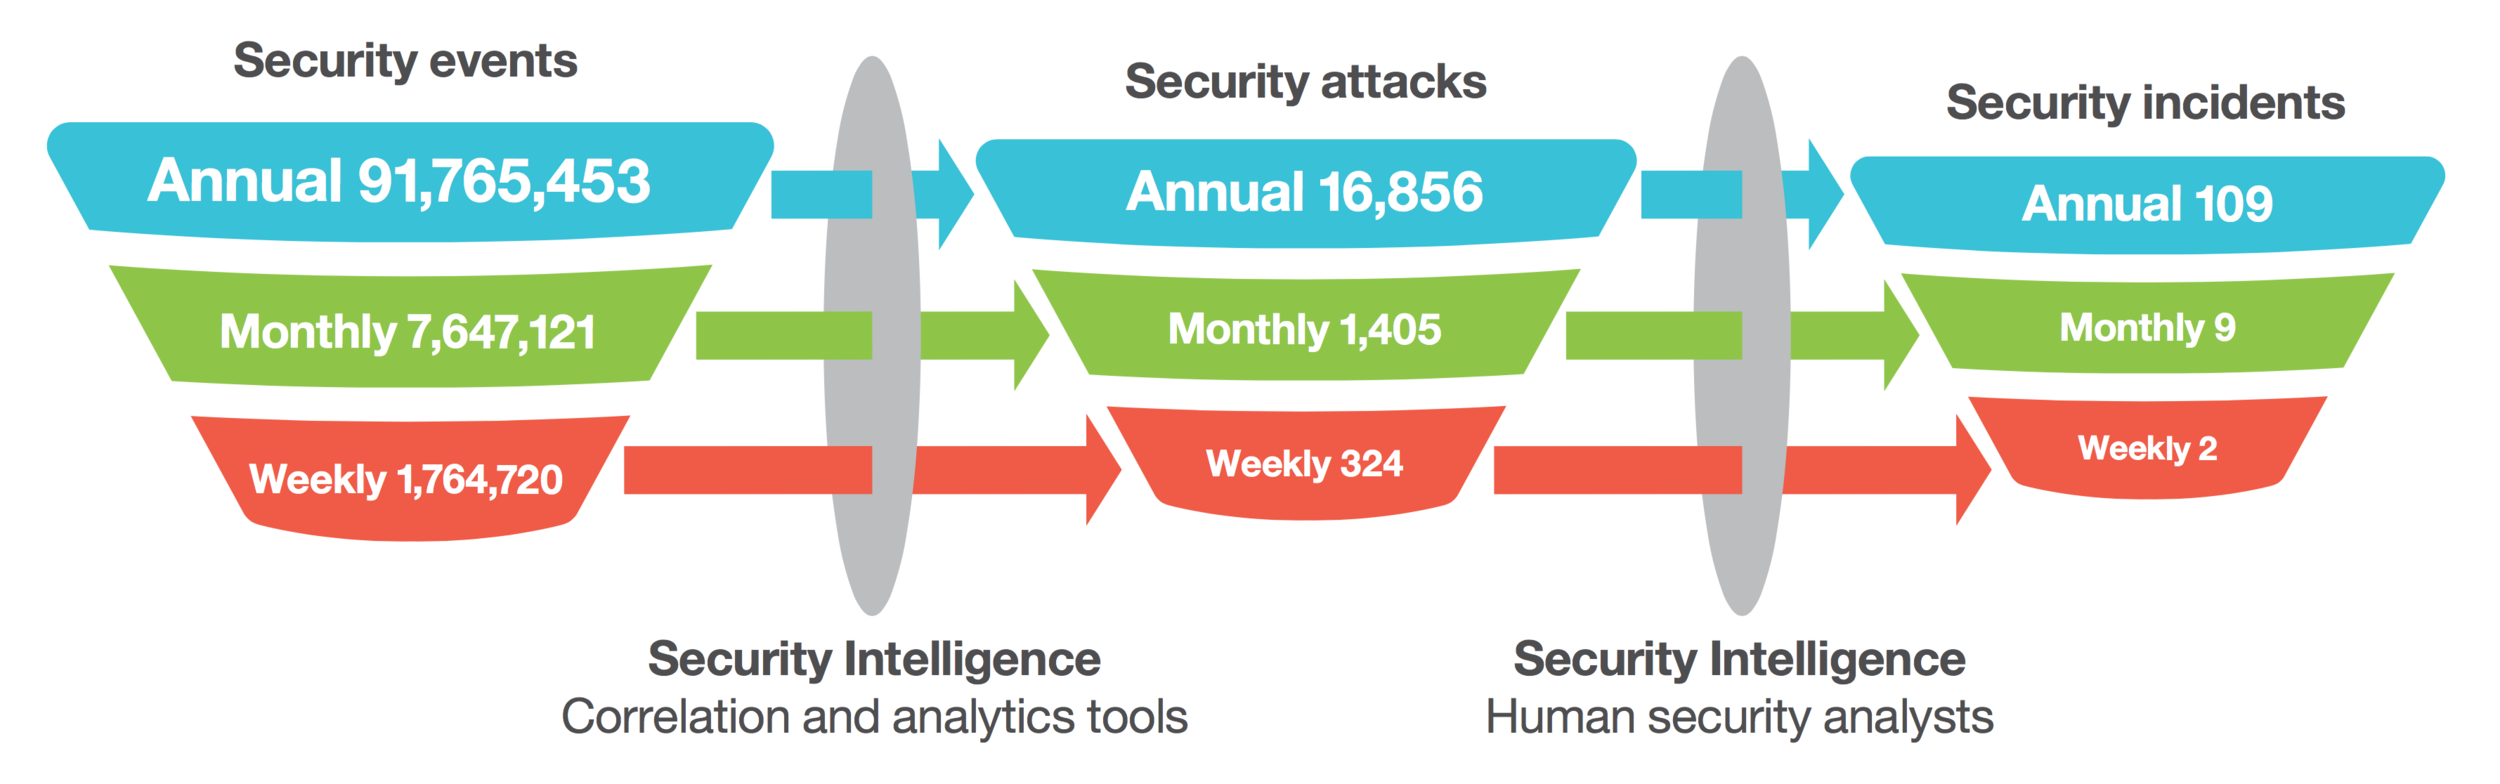 Security event: An event on a system or network detected by a security device or application. Security attack: A security event that has been identified by correlation and analytics tools as malicious activity that is attempting to collect, disrupt, deny, degrade or destroy information system resources or the information itself. Security incident: An attack or security event that has been reviewedand deemed worthy of deeper investigation. Security breach: An incident that has successfully defeated security measures and accomplished its designated task.